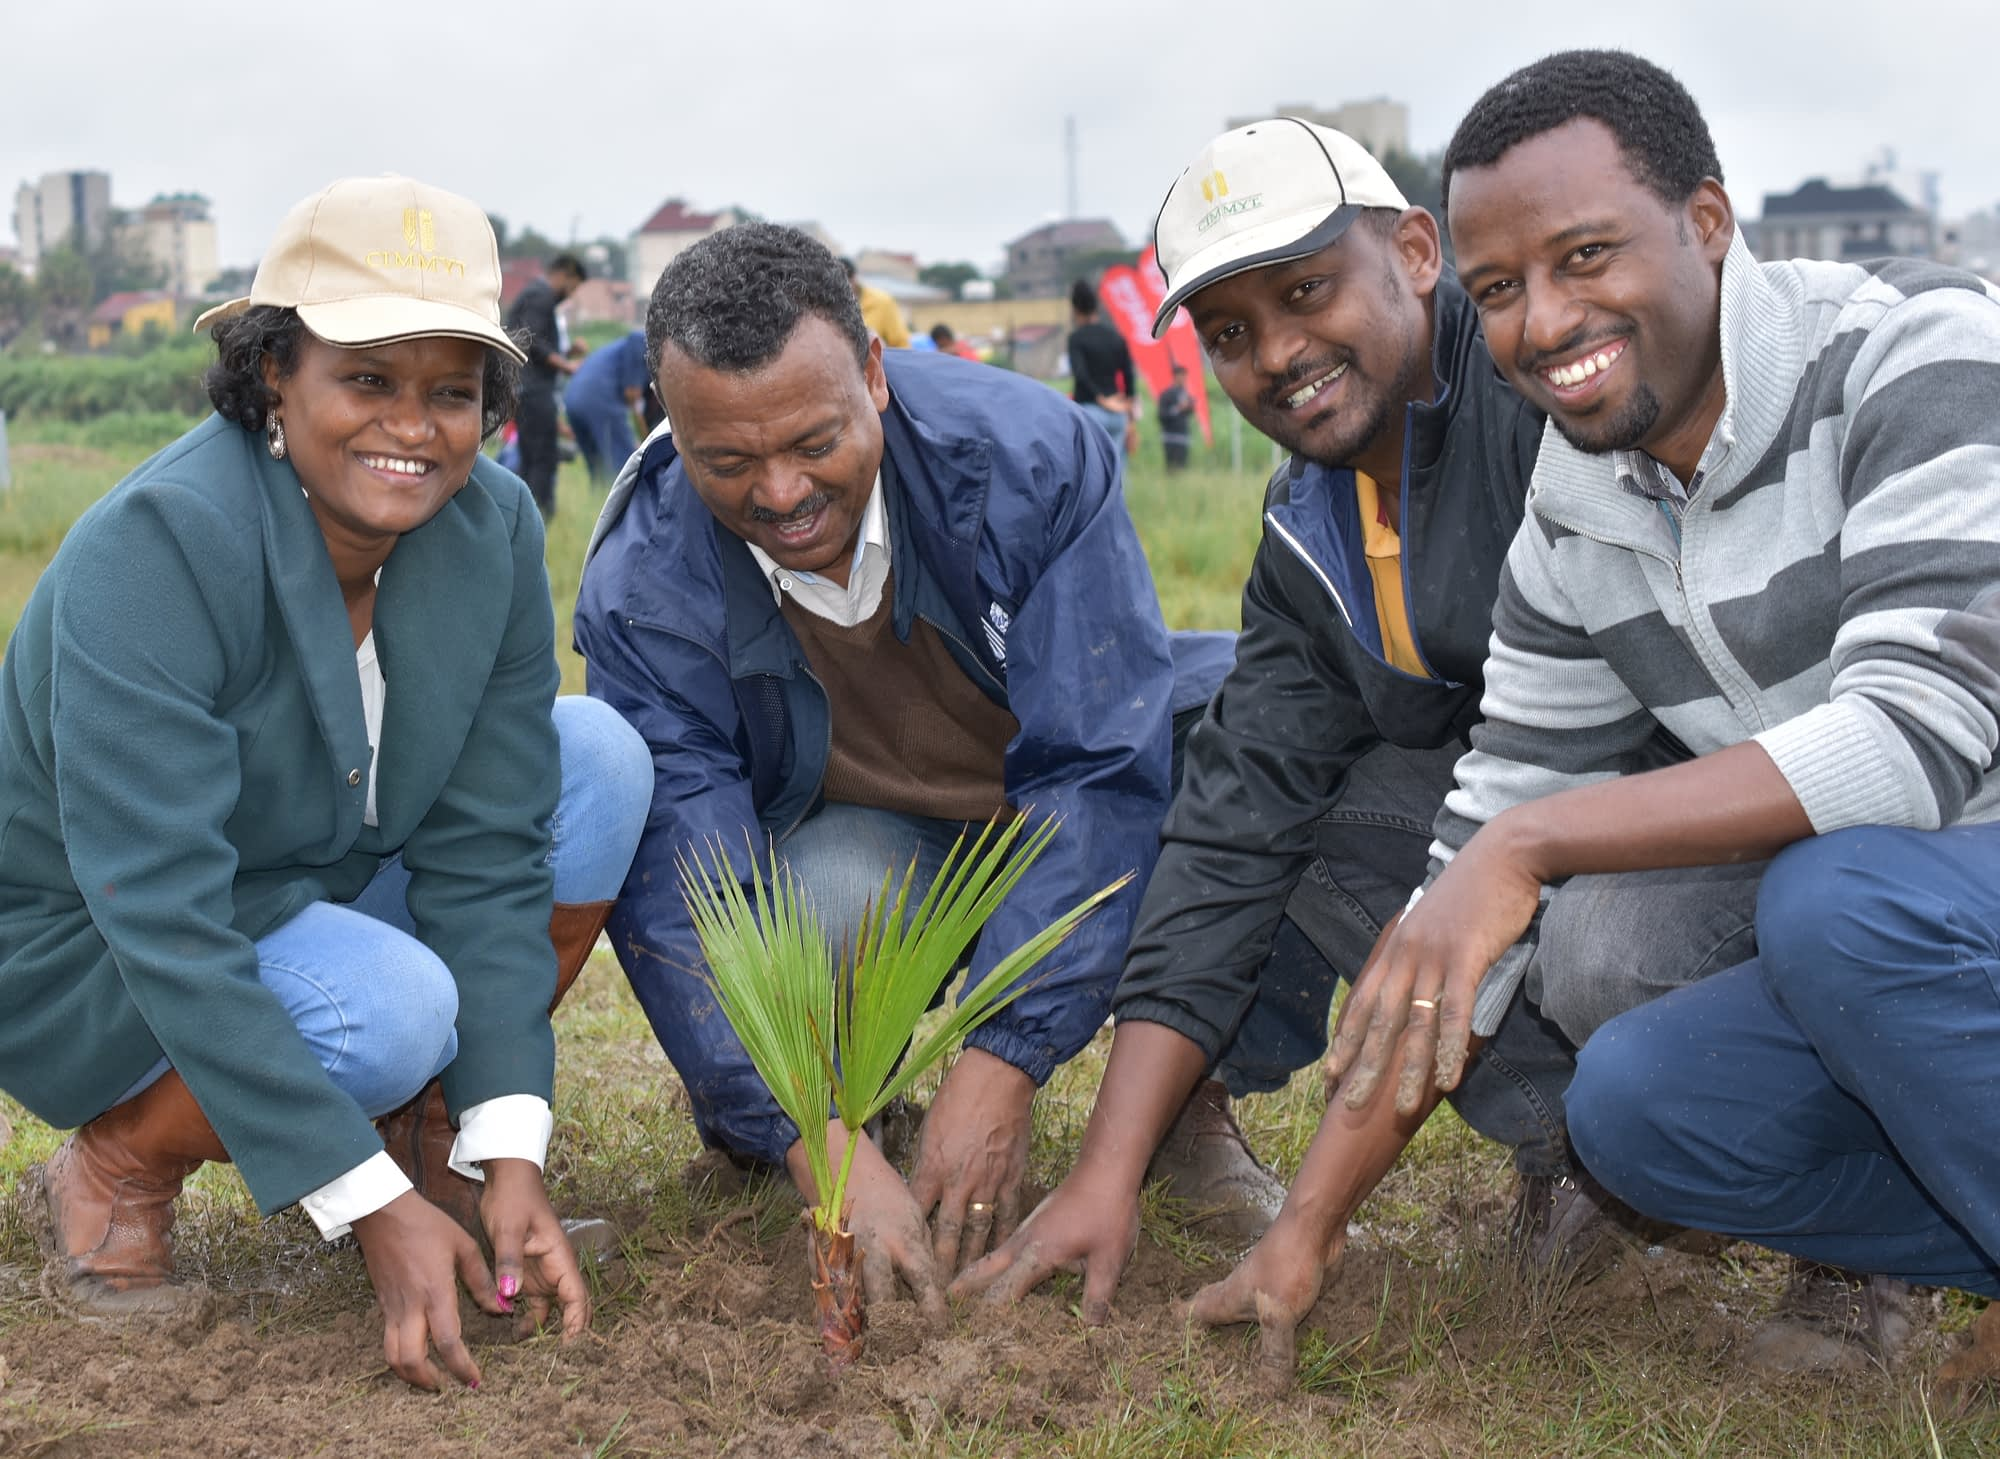 Staff members of CIMMYT and other CGIAR centers in Ethiopia participated in the country's nationwide campaign that resulted in the planting of more than 350 million trees in one single day. (Photo: CIMMYT)